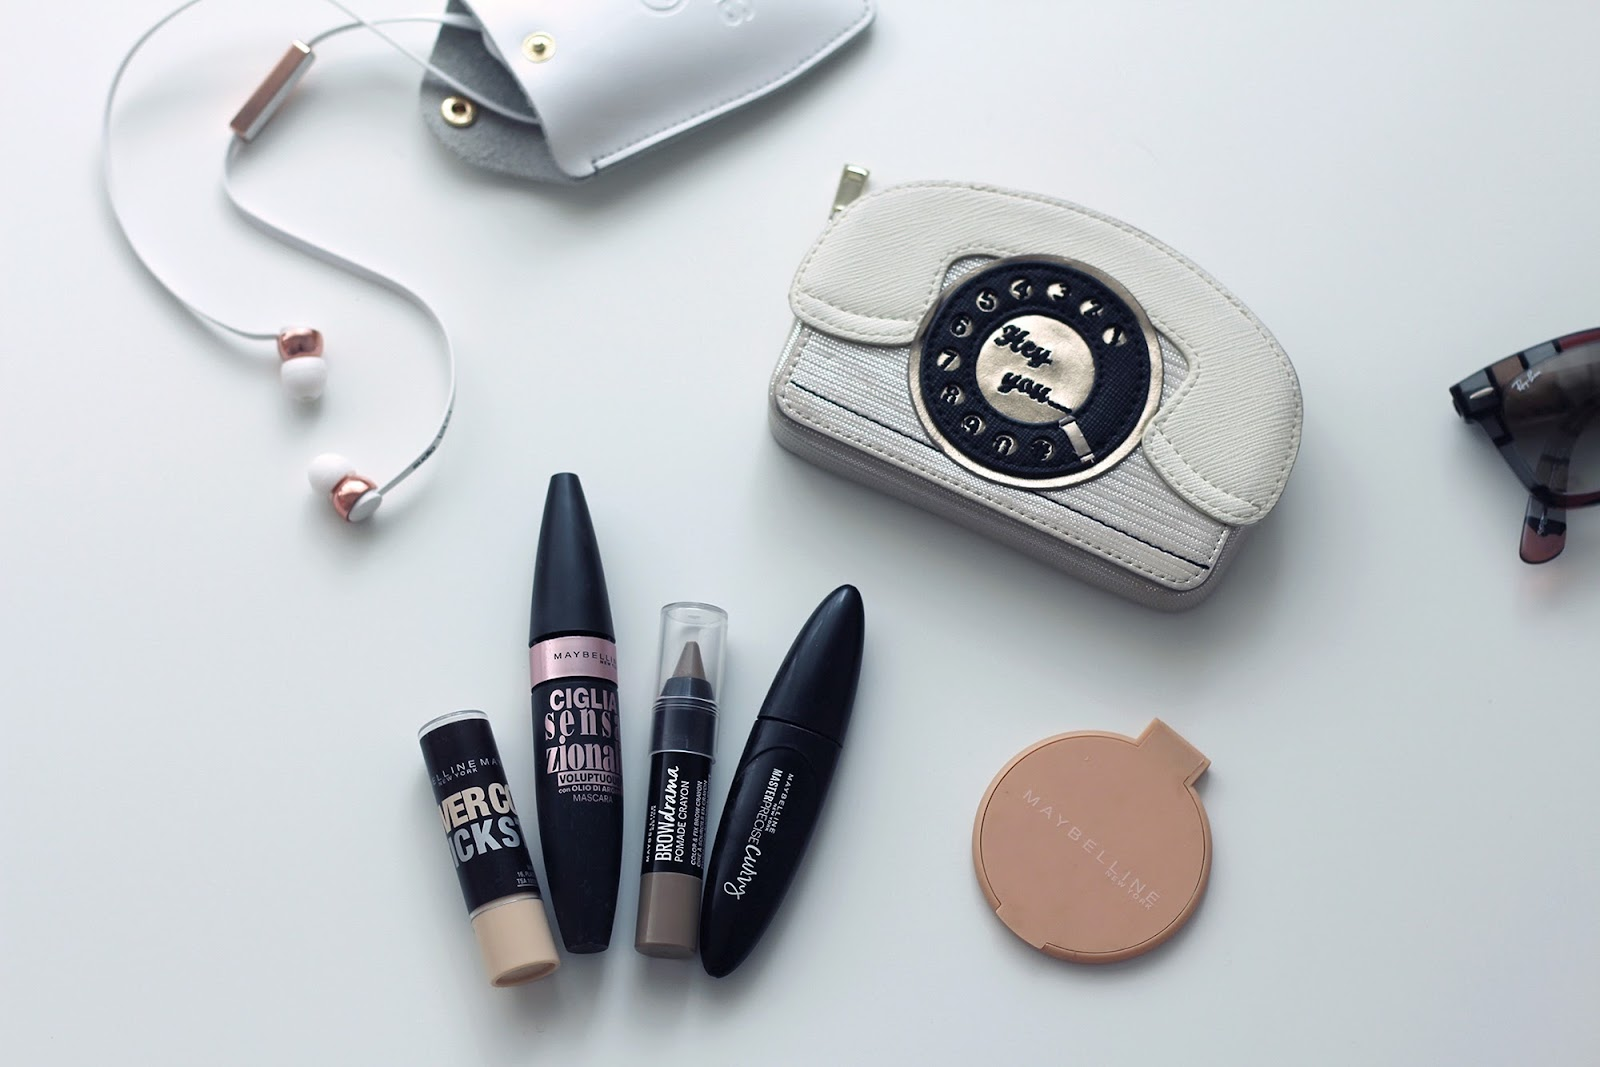 fashion style blogger outfit ootd italian girl italy trend vogue glamour pescara what is in my bag borsa make up maybelline cosmetics sudio sweden music pablo baldini yellow case app cover iphone